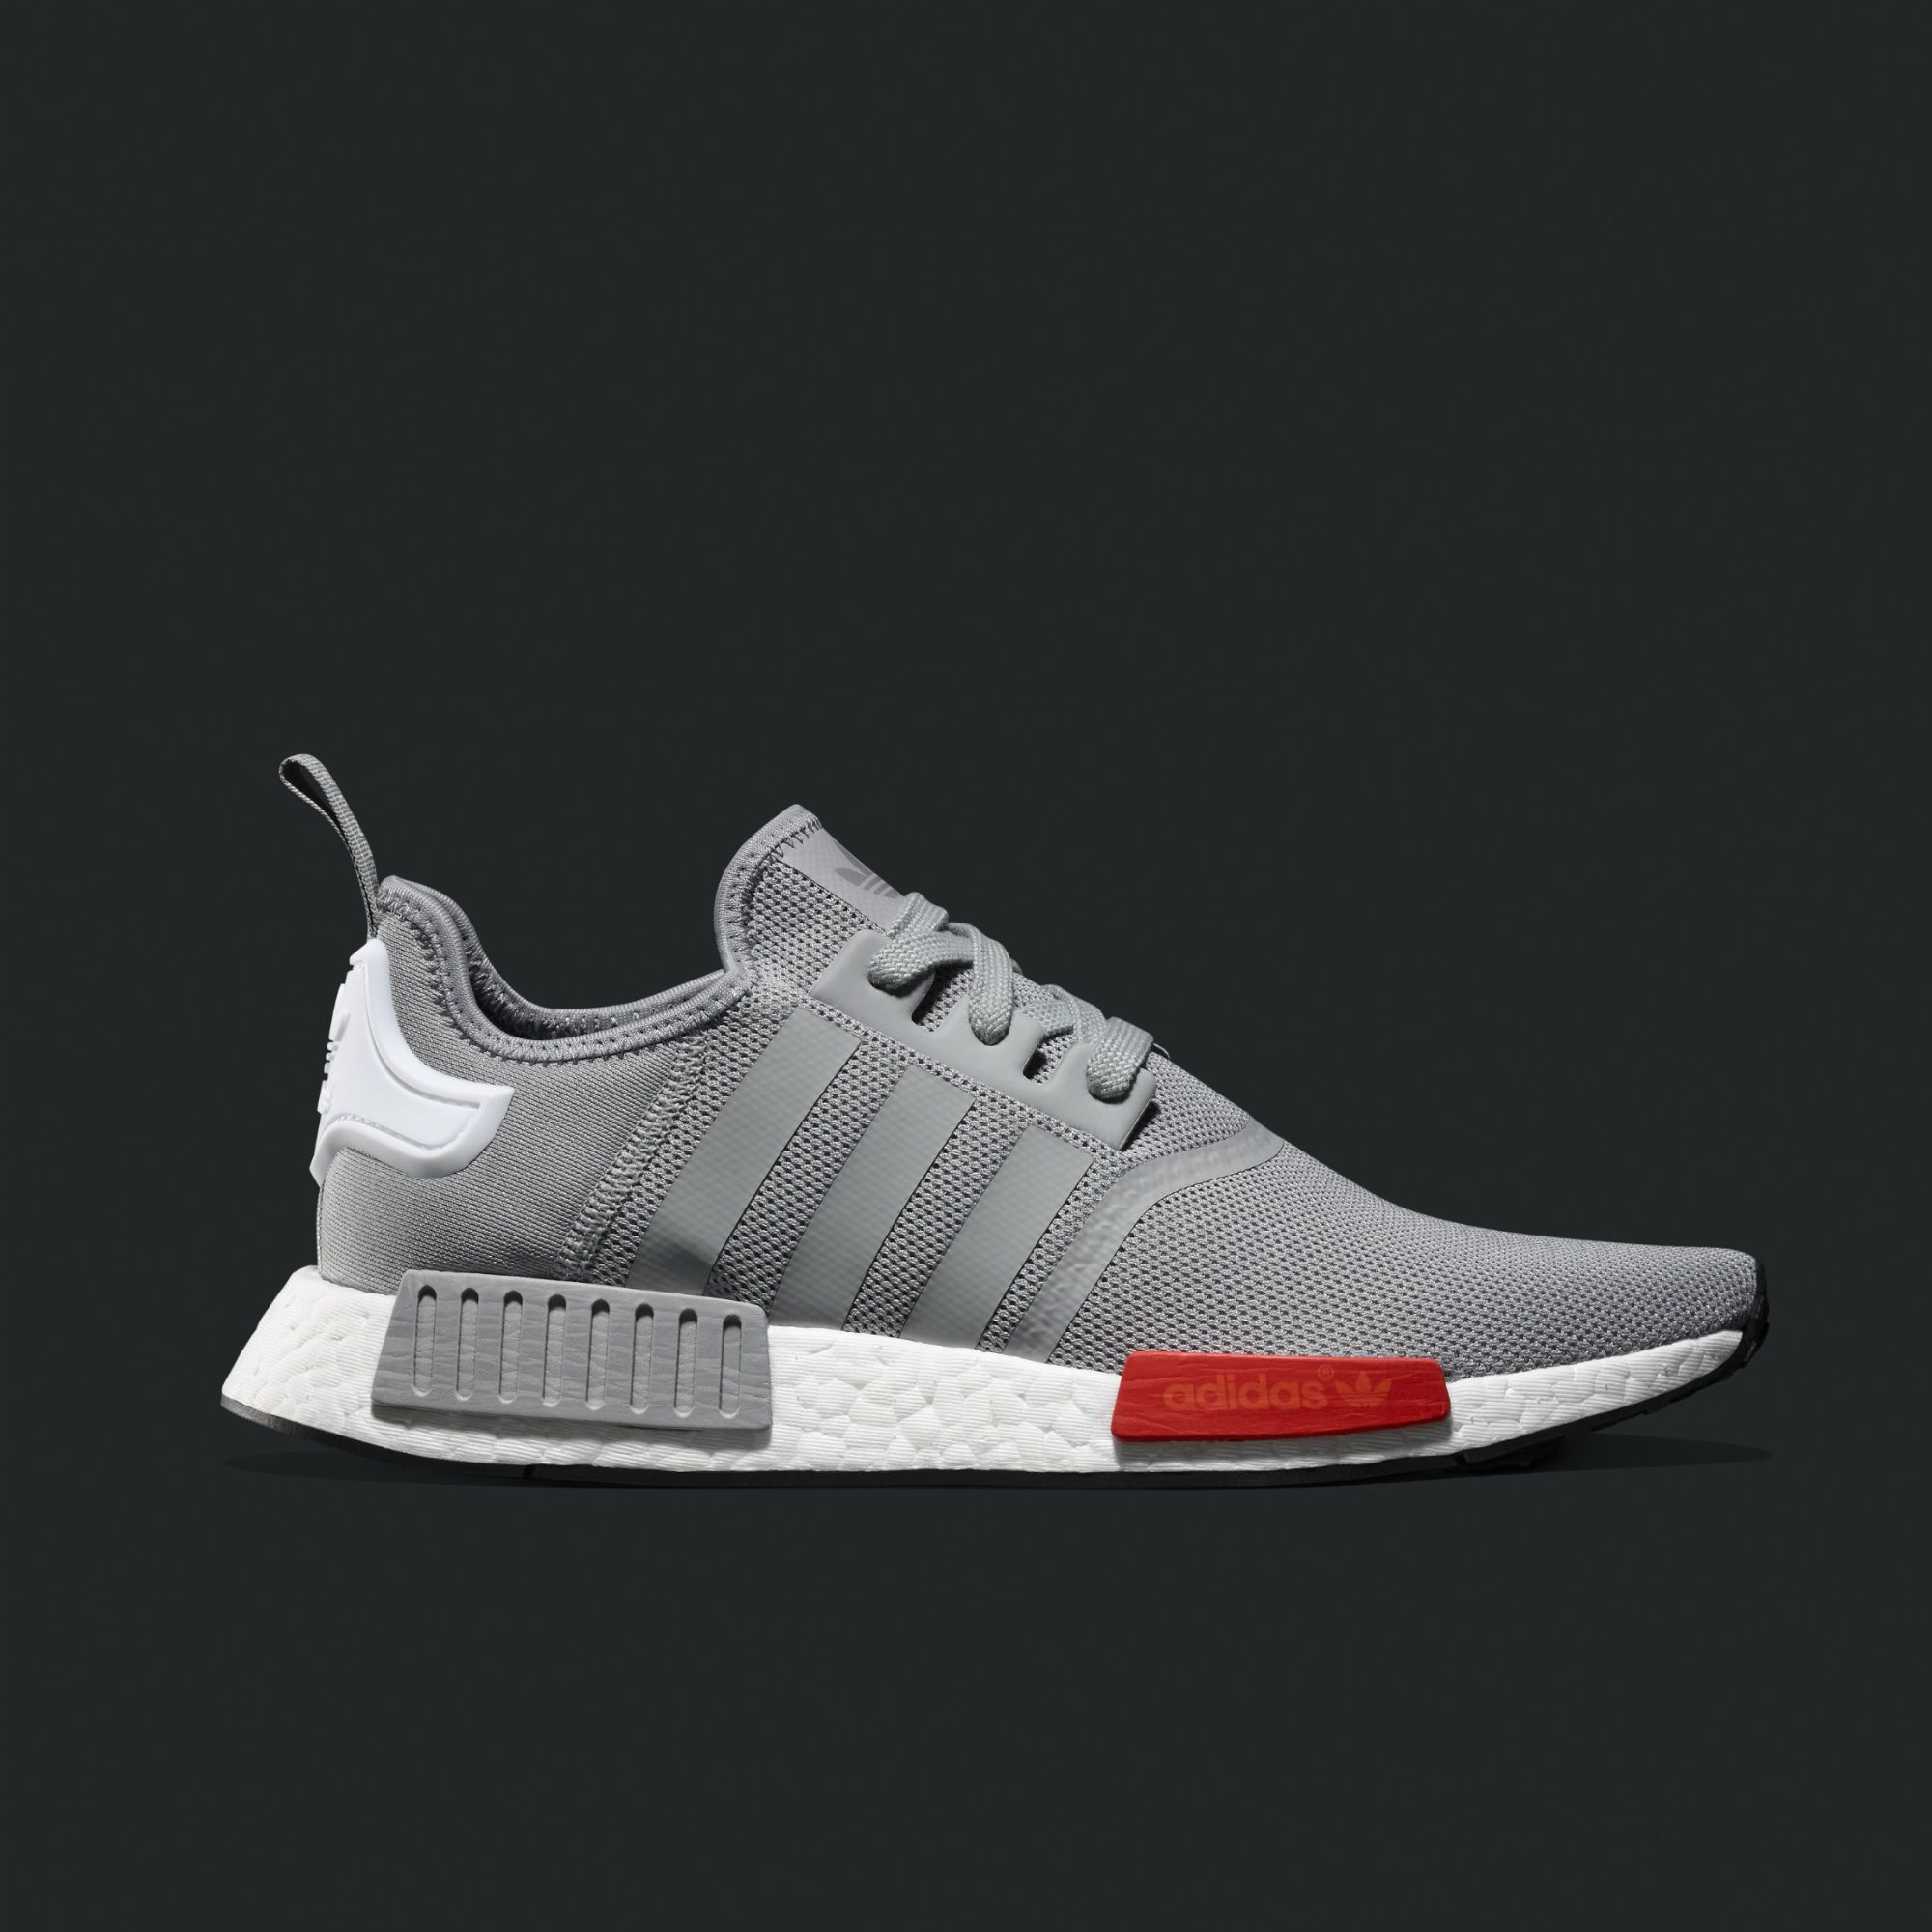 fe9346a786841 Iman Shumpert Models New adidas NMD R1 Colorways